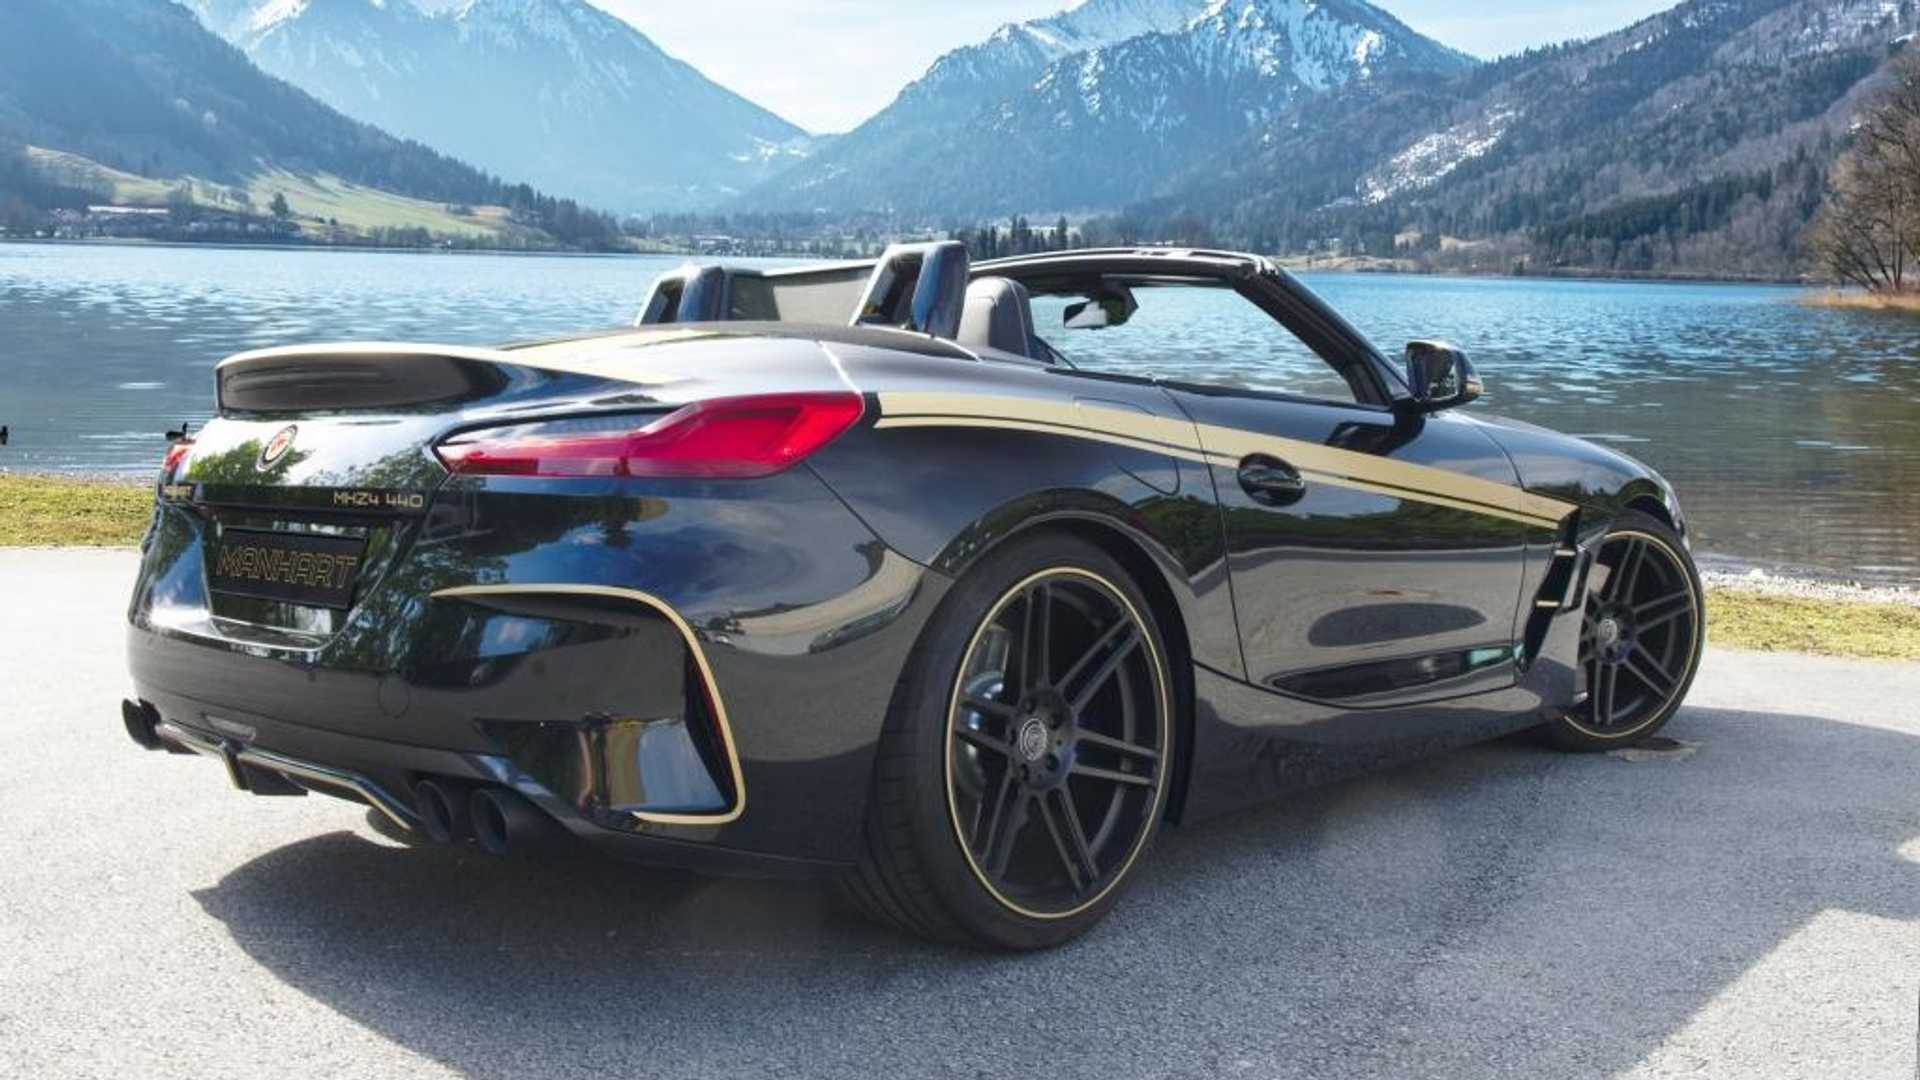 Bmw Z4 M40i By Manhart Sounds Raucous And We Love It